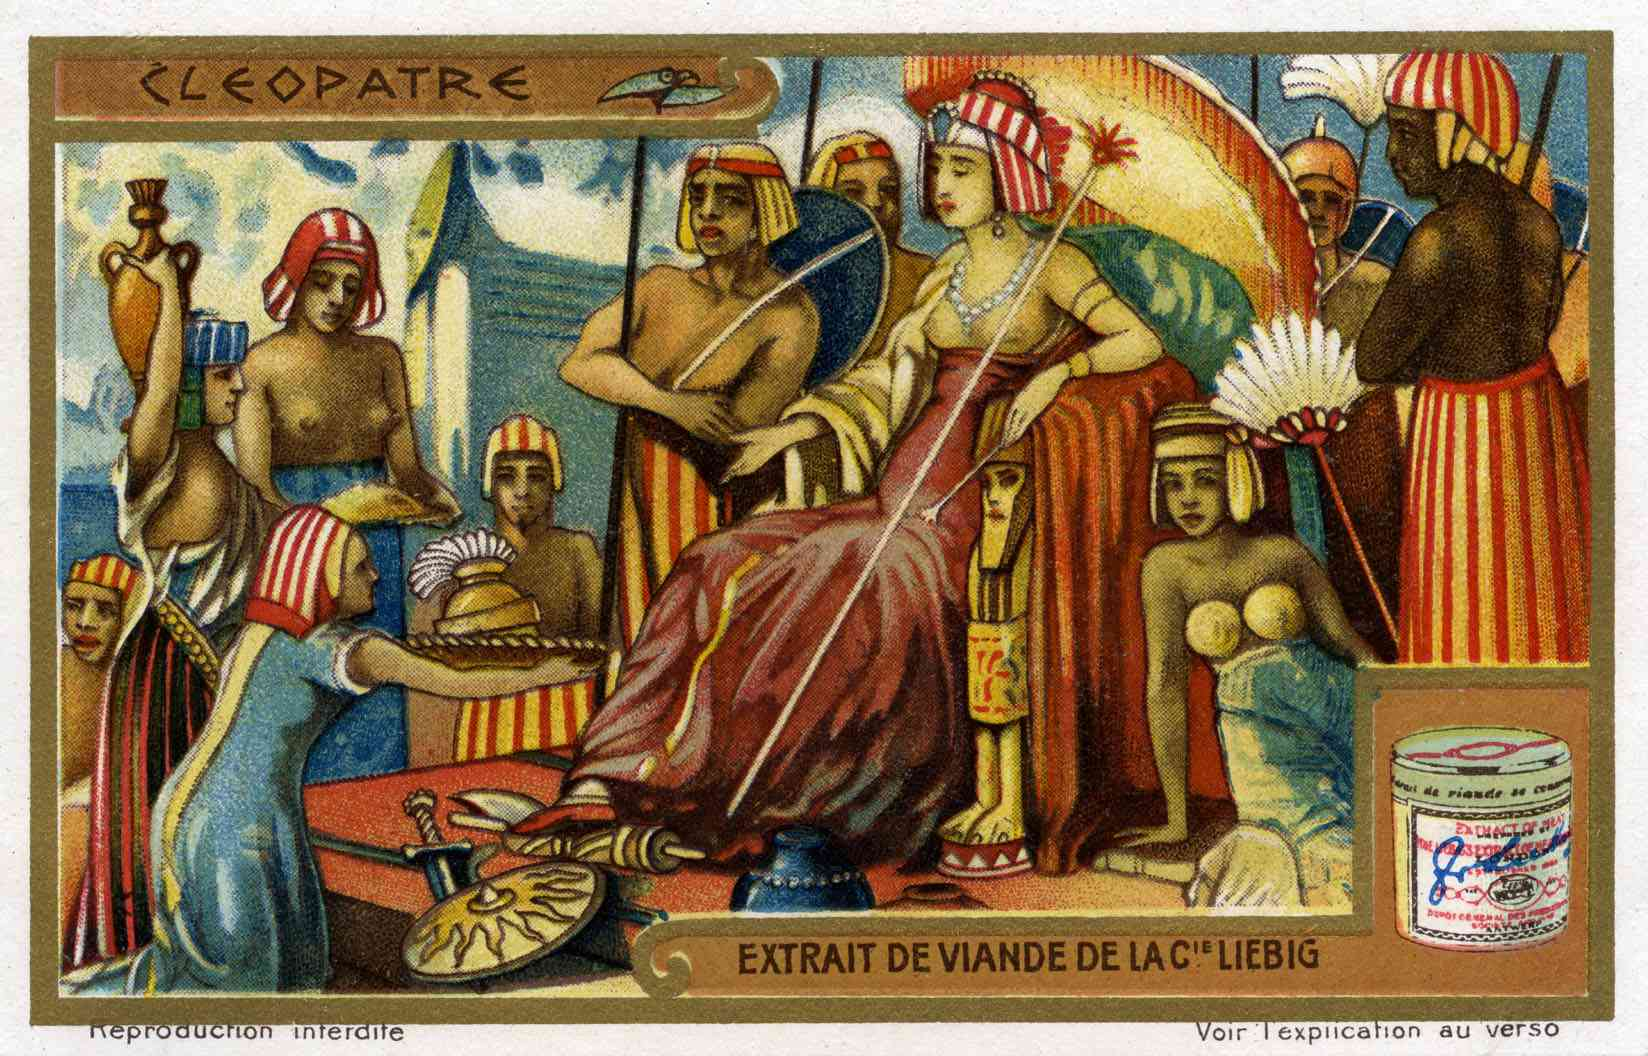 Cleopatra VII (Late 69 BC – August 12, 30 BC) , the last effective pharaoh of Ancient Egypt